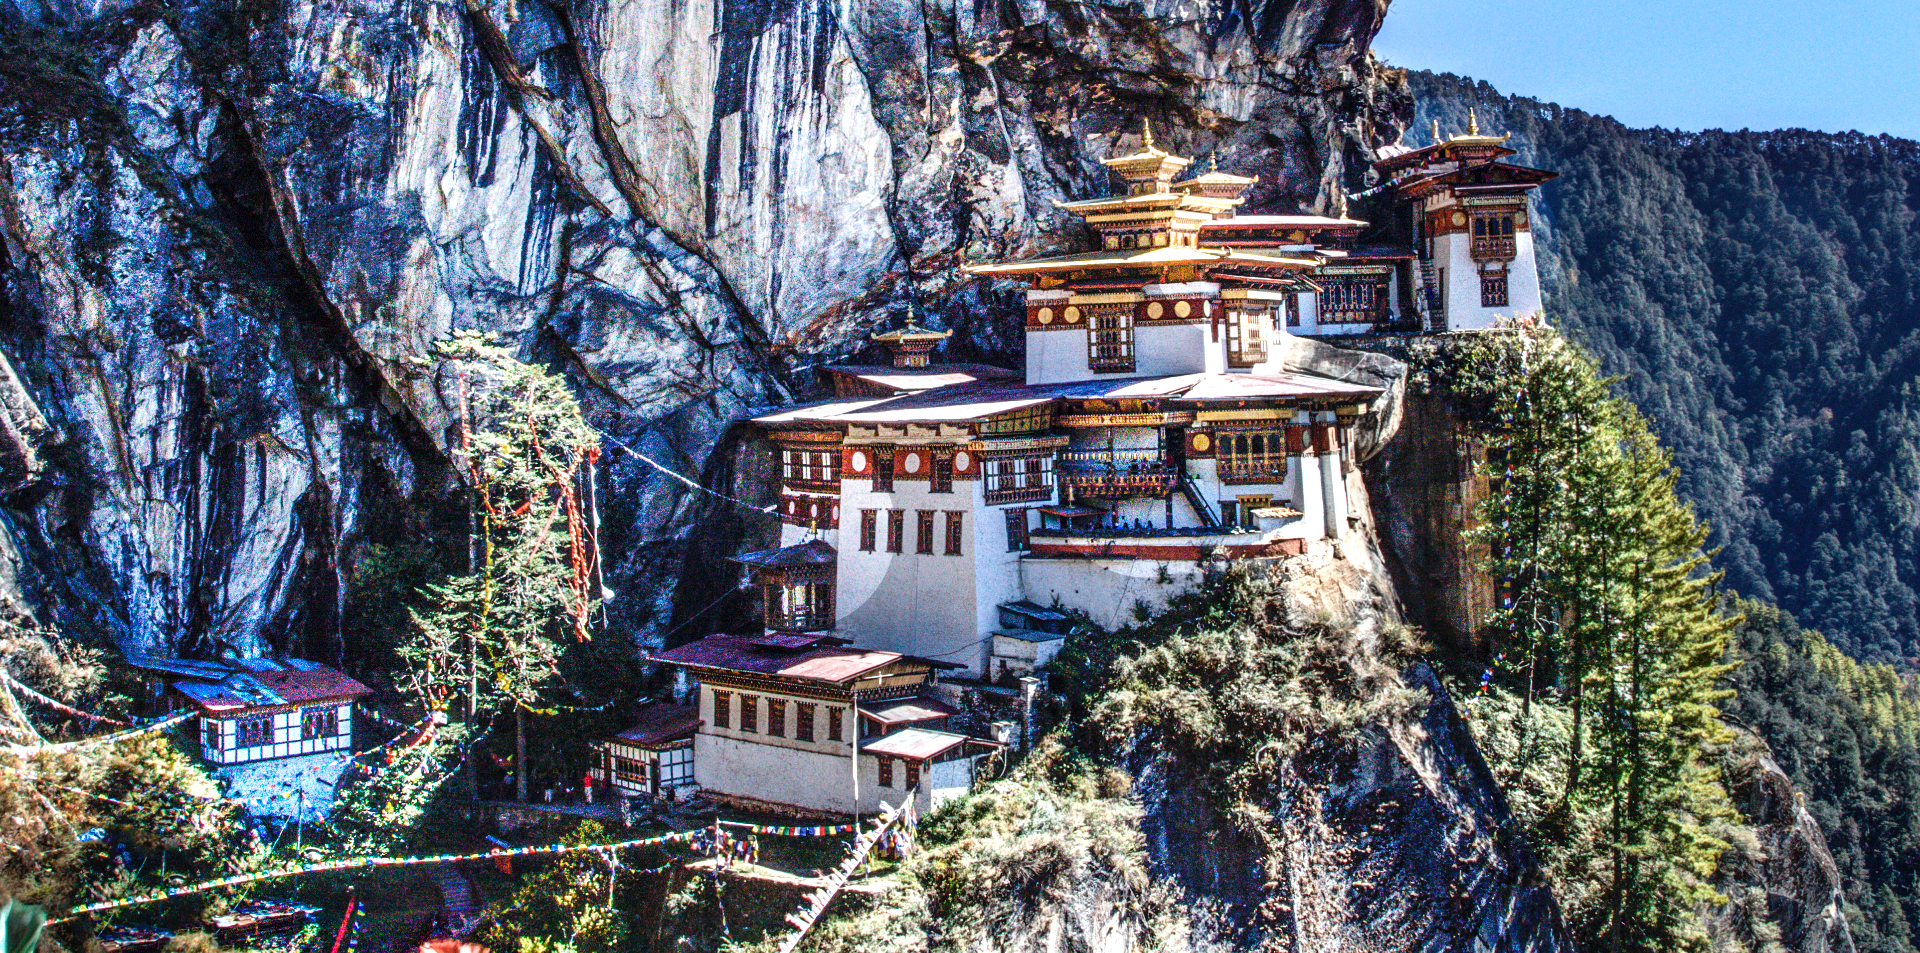 TIGER'S NEST AT PARO